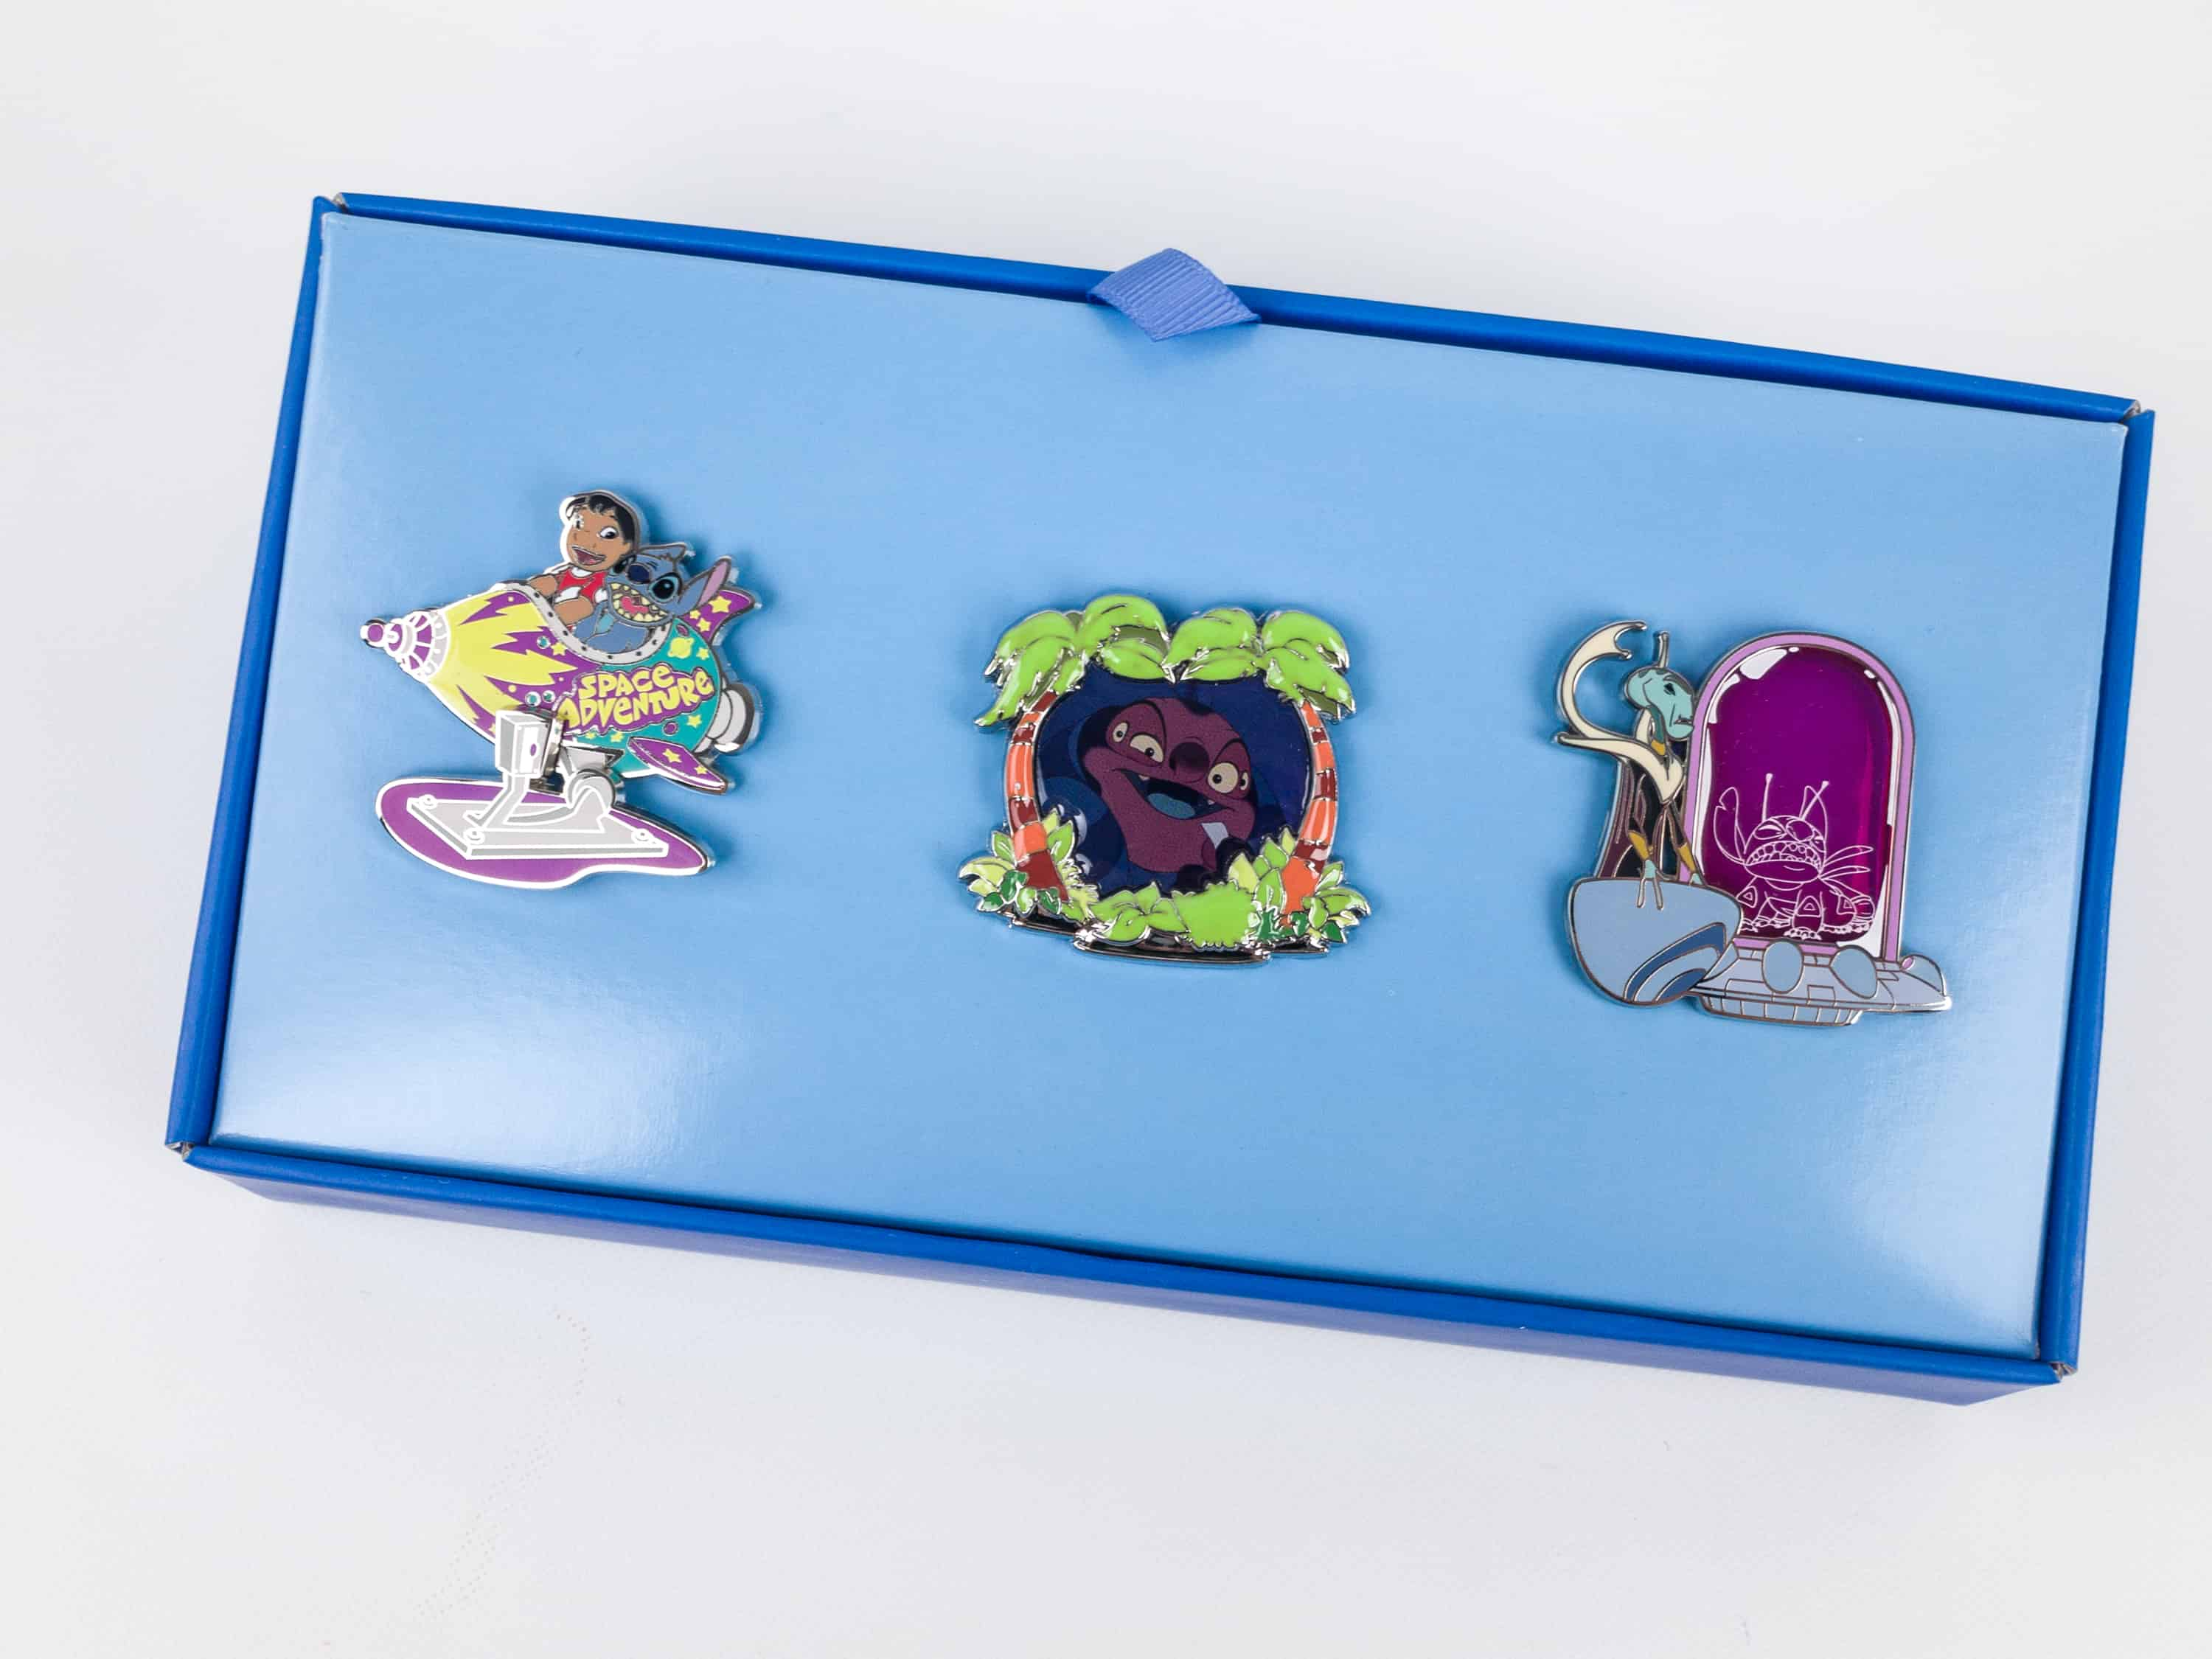 Disney Park Pack Pin Edition 3.0 December 2017 Subscription Box Review